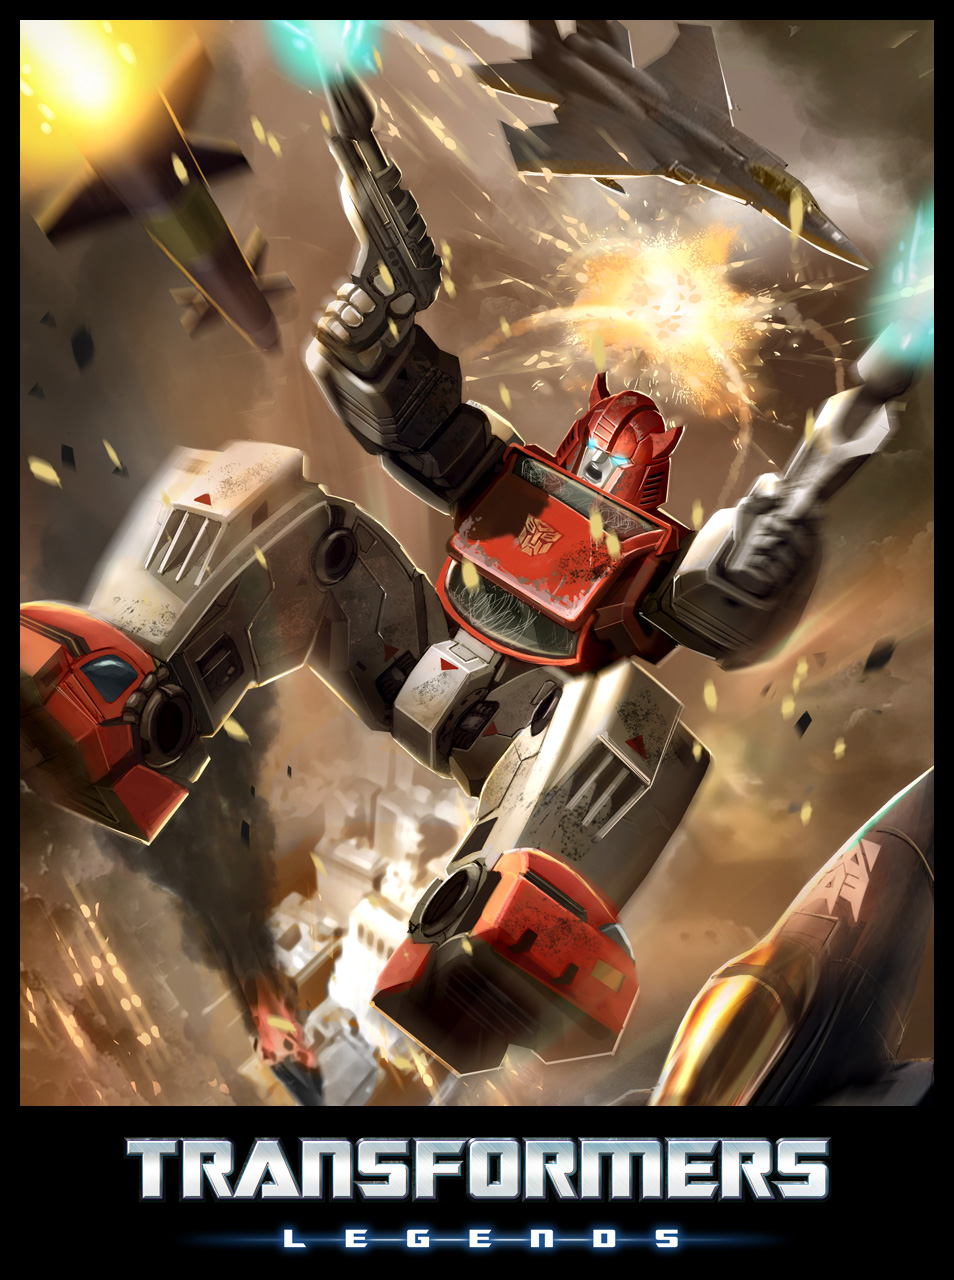 TRANSFORMERS: LEGENDS Free-to-Play Game launches for iPhone, iPad, iPod Touch + Android